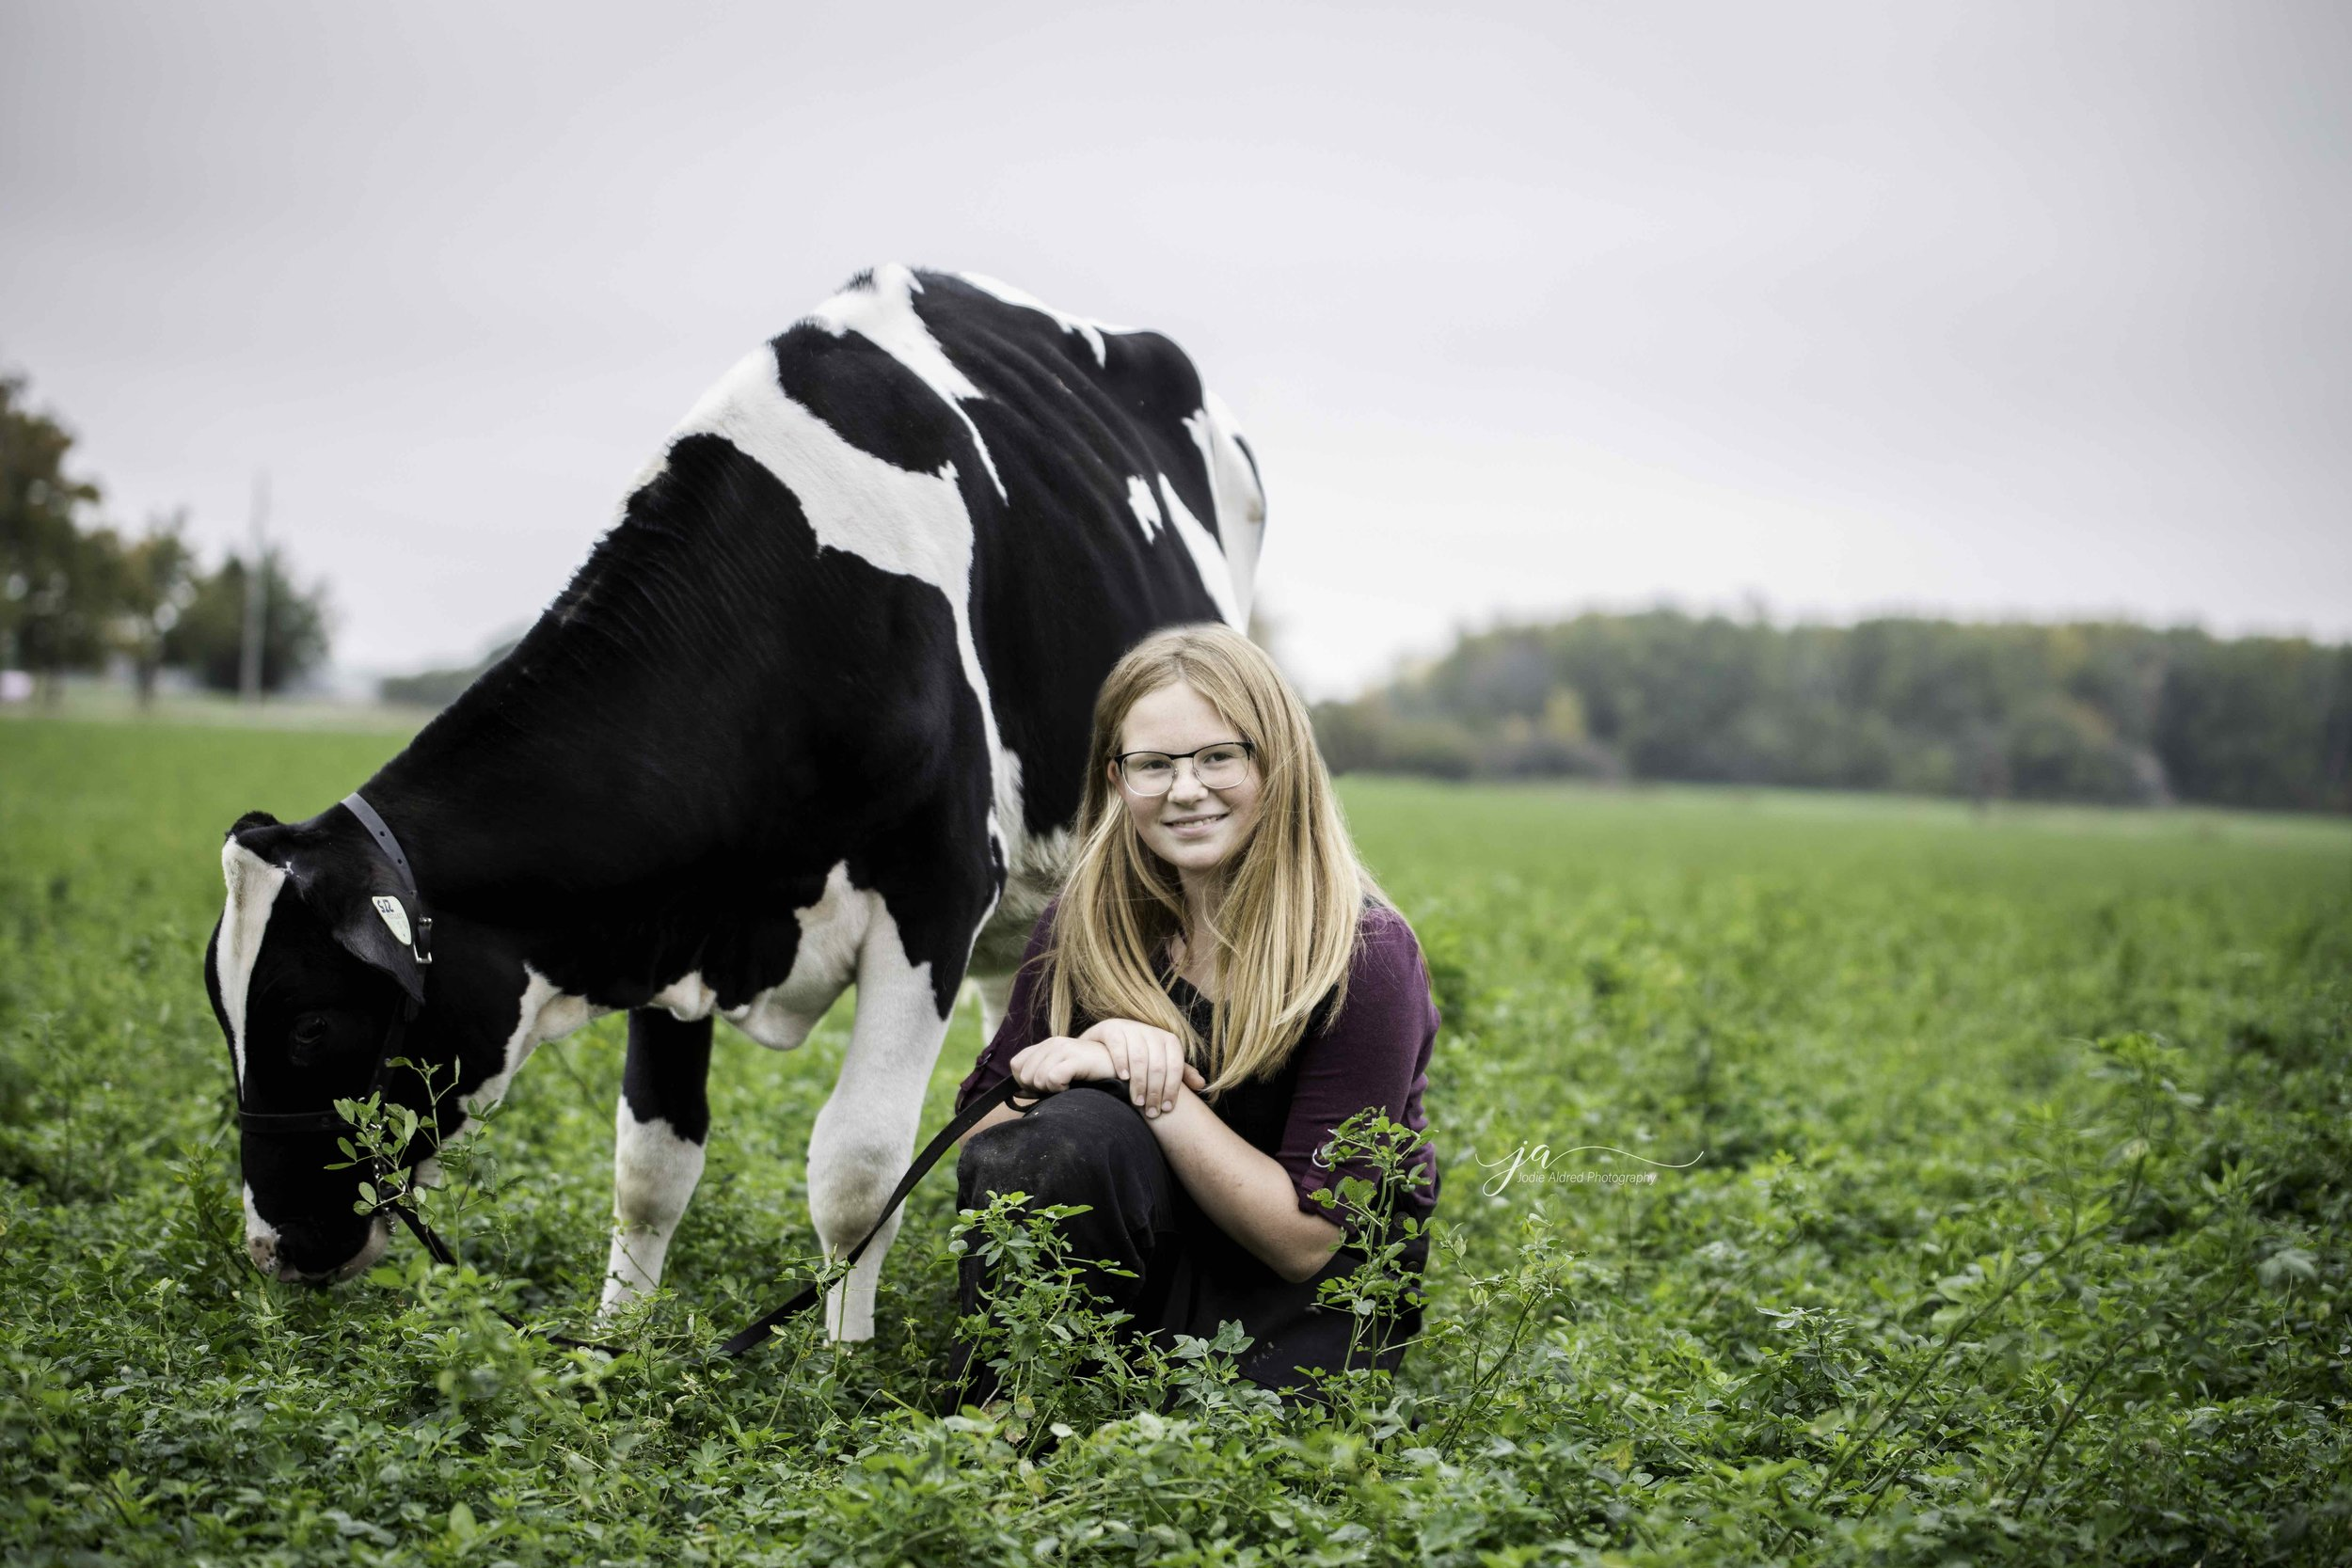 Jodie-Aldred-Photography-Chatham-Kent-Elgin-Middlesex-London-Ontario-Farm-Family-4H.jpg